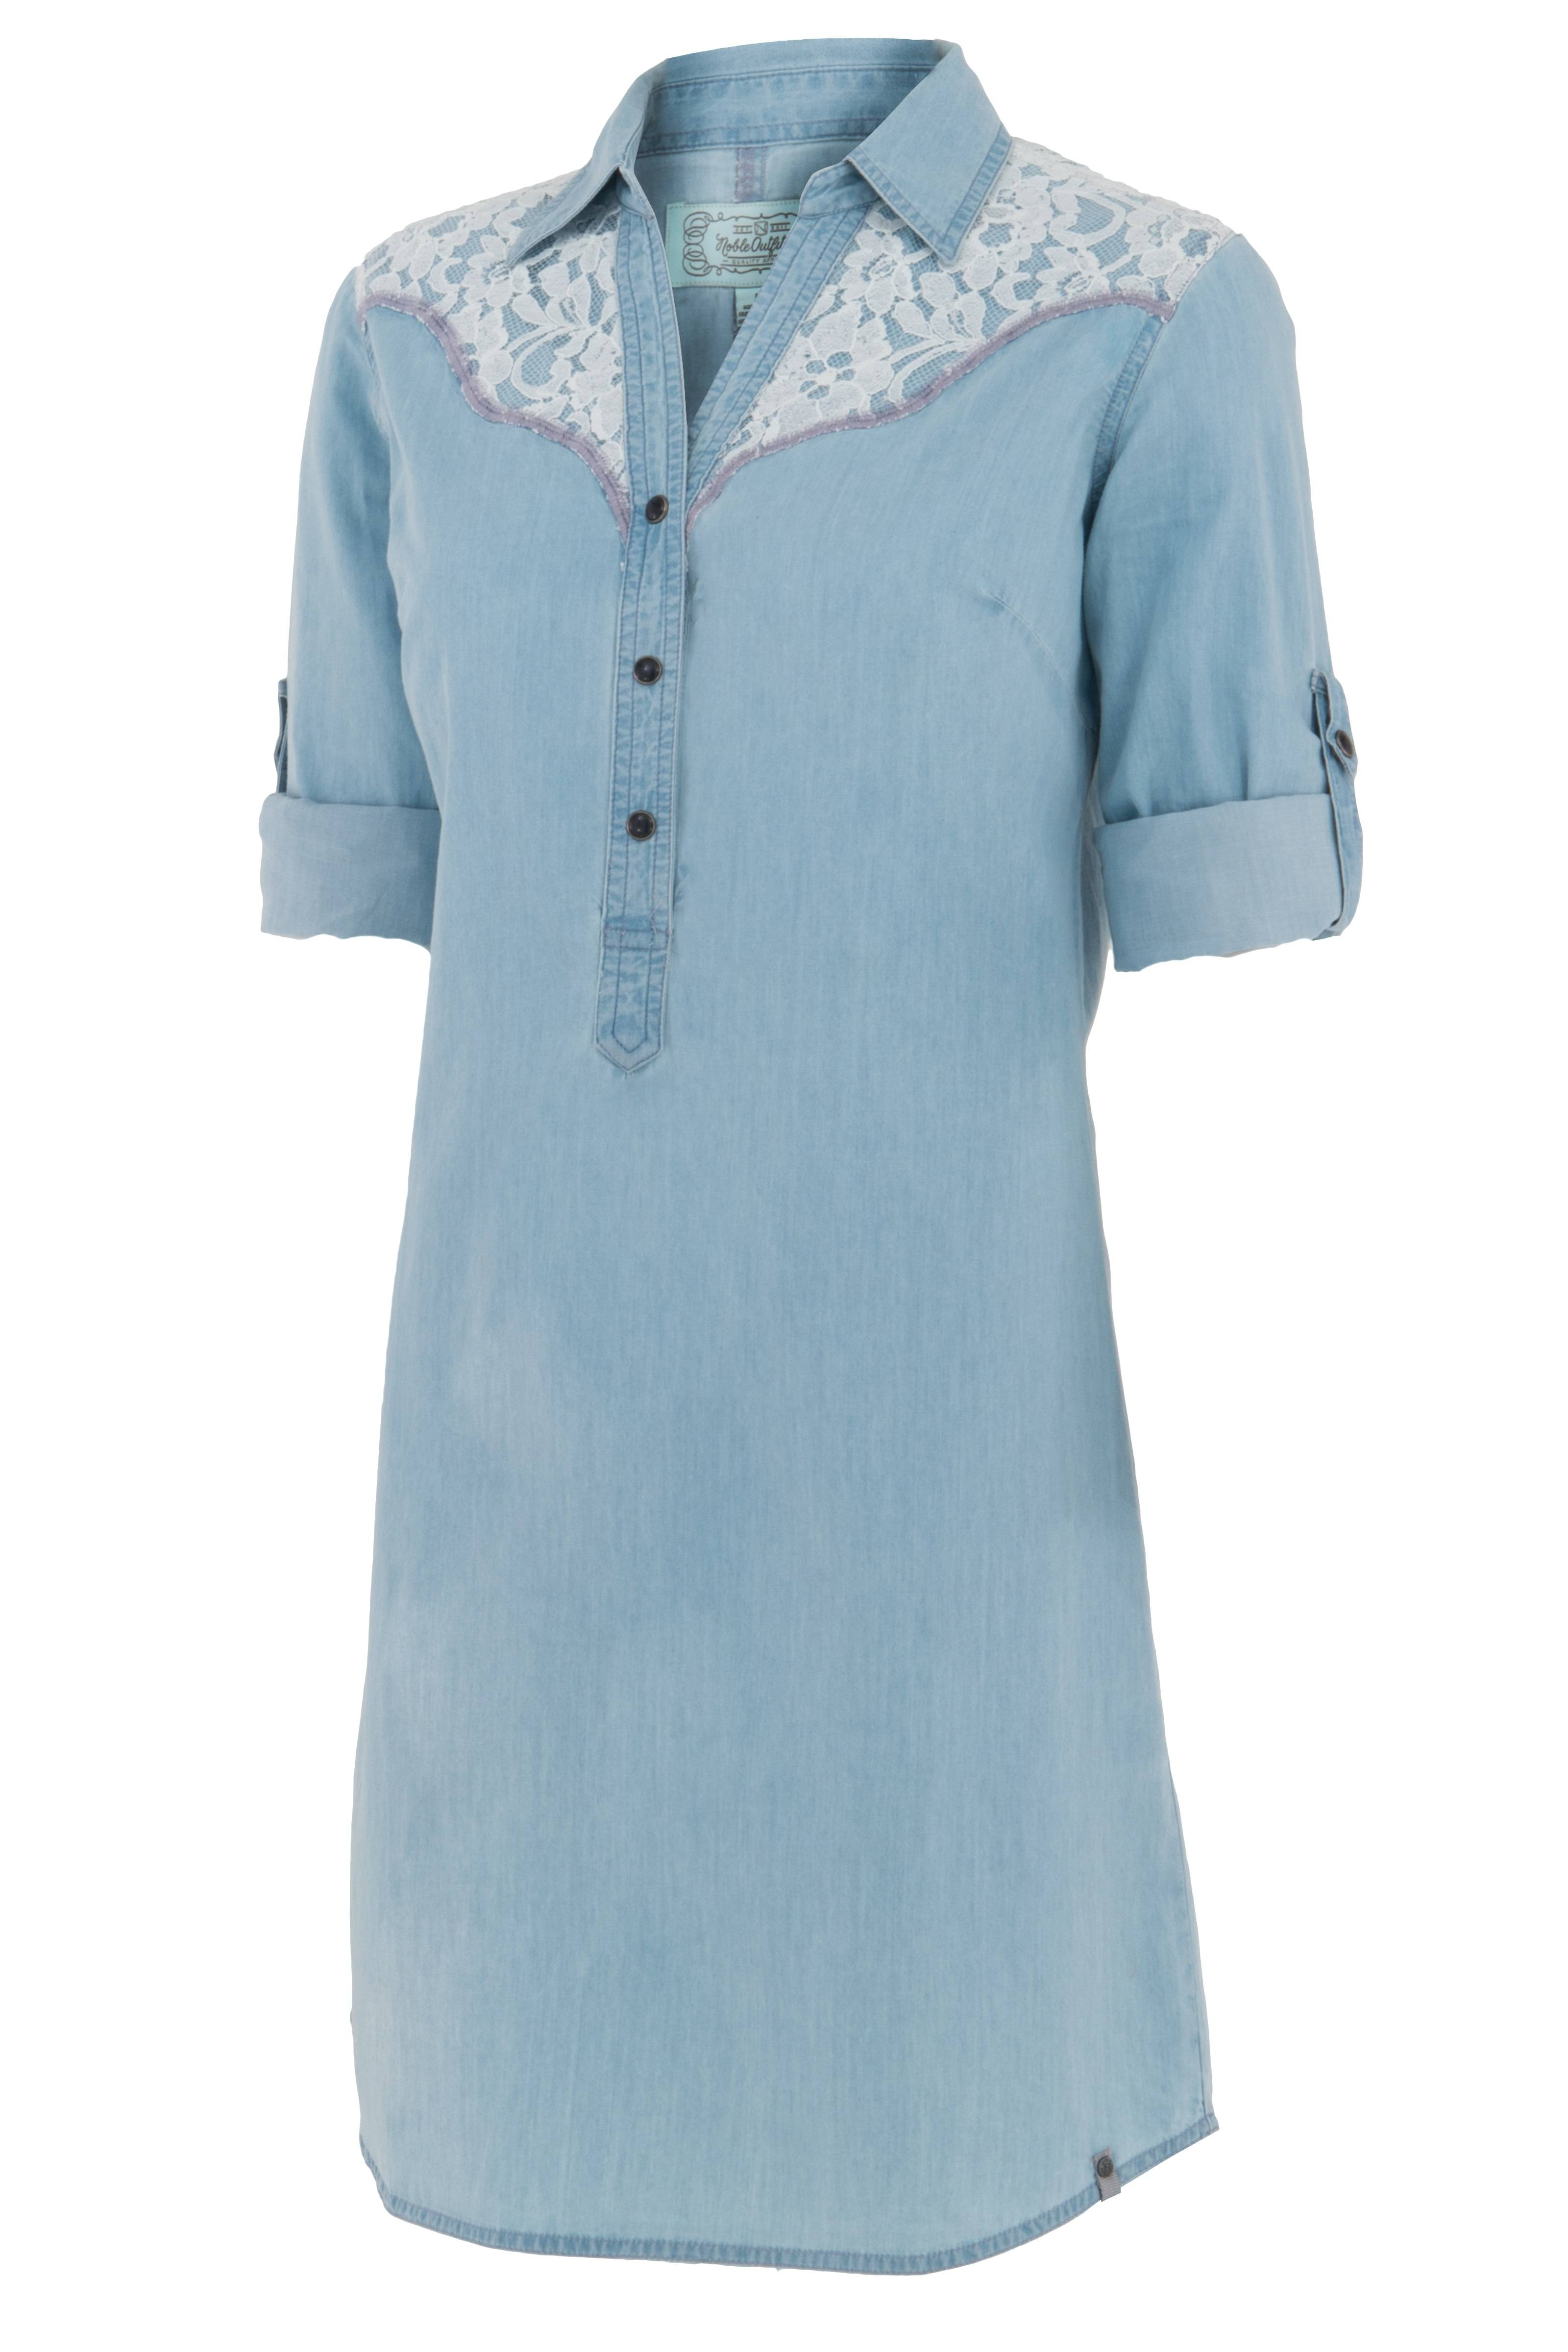 Noble Outfitters Bluegrass Lace Dress - Ladies